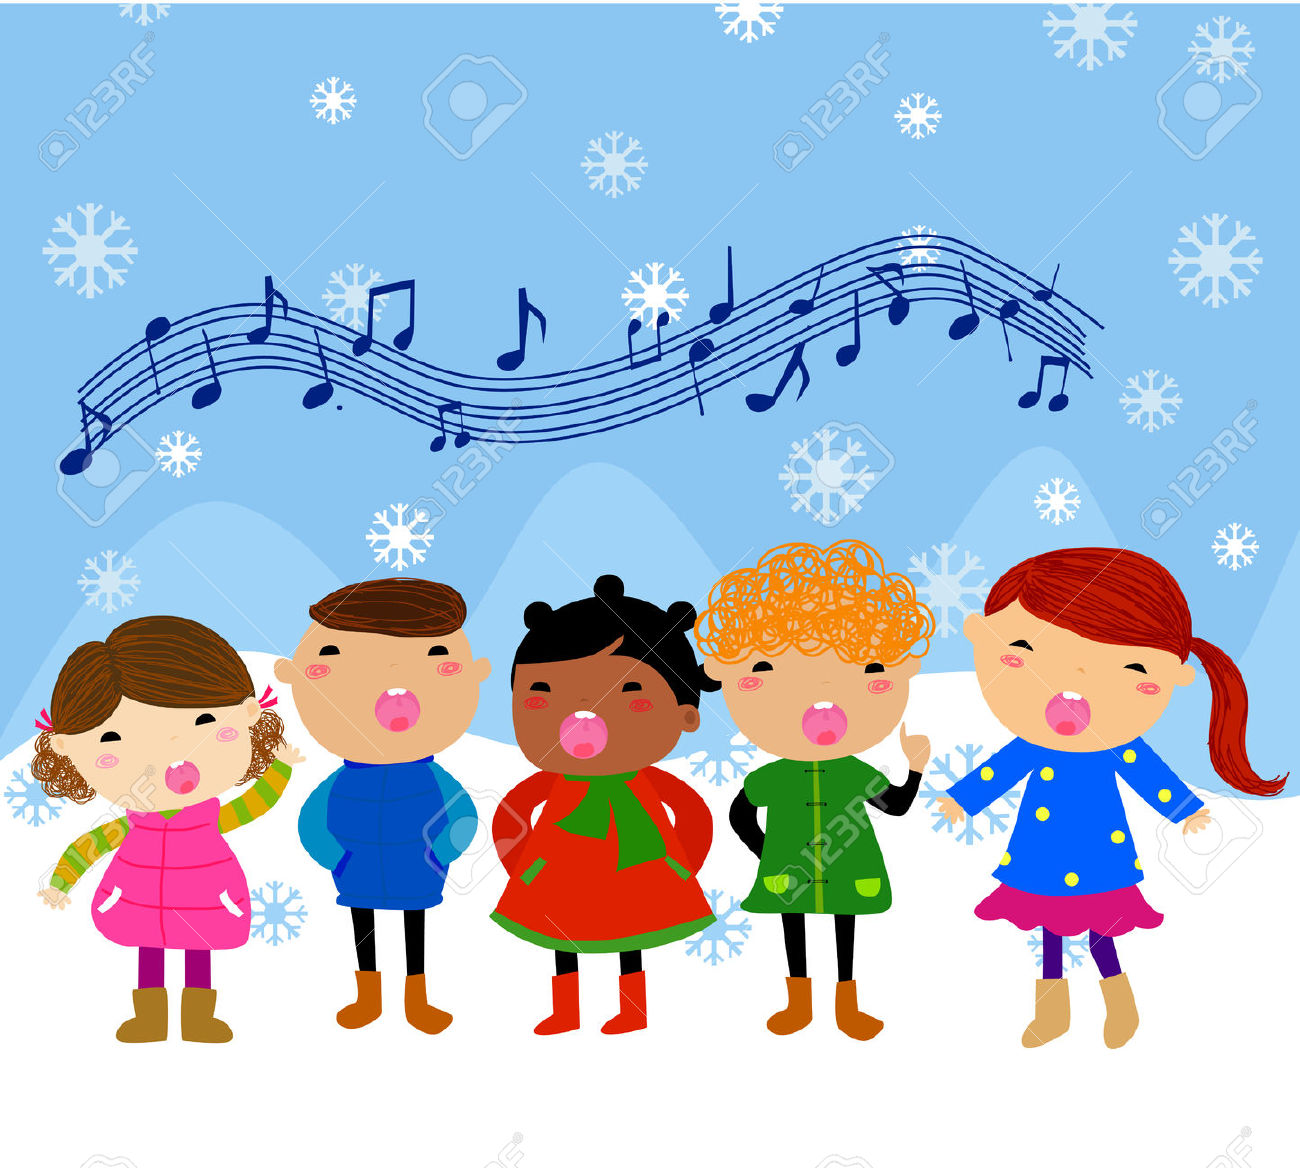 Winter Kids Singing Silent Night Song Royalty Free Cliparts.